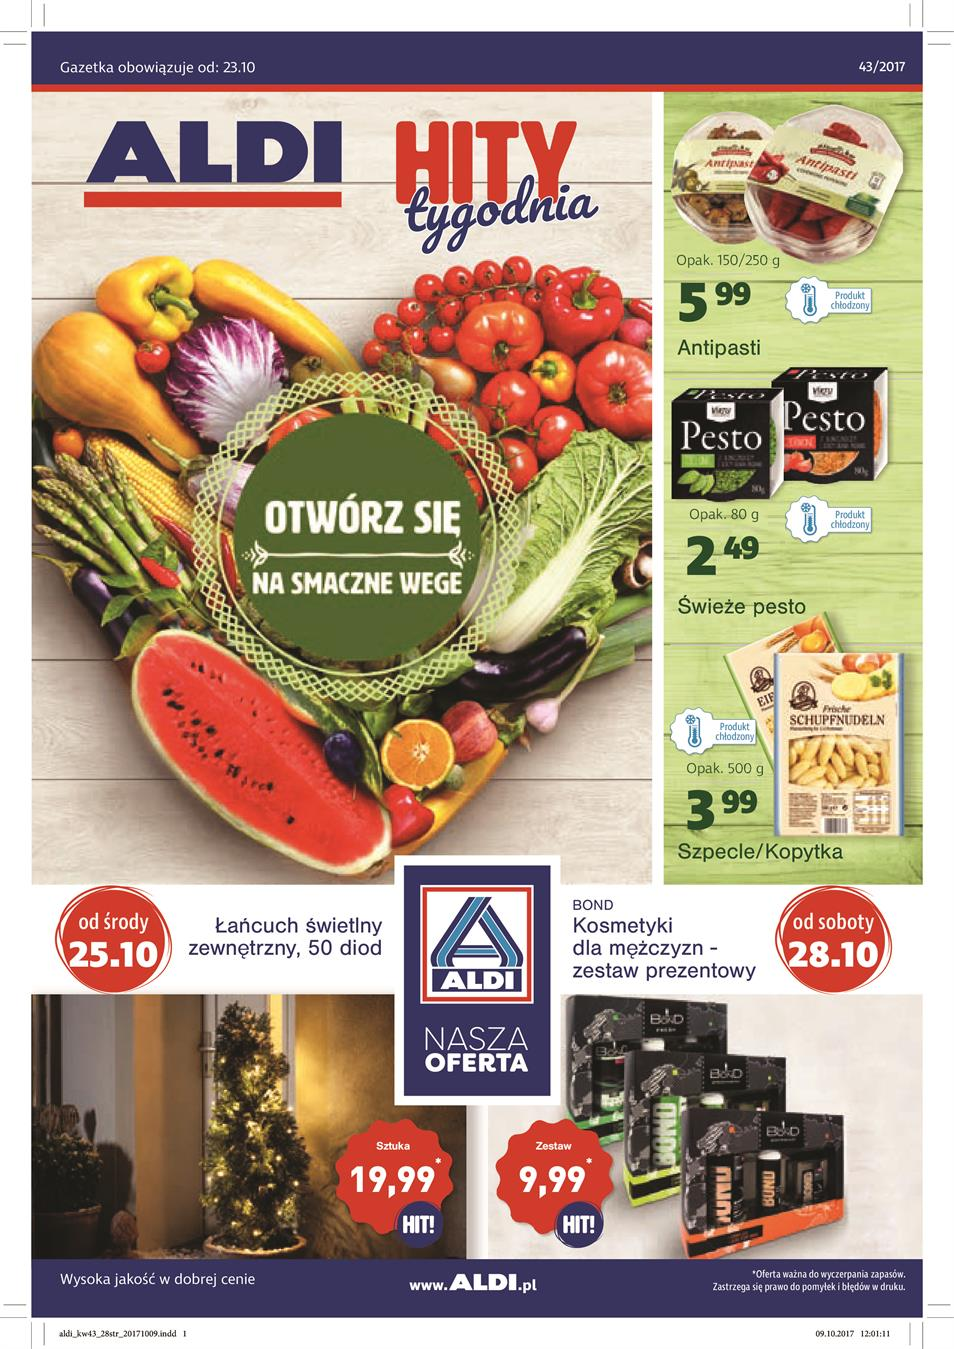 Gazetka ALDI SP Z O O  nr 0 od 2017-10-23 do 2017-10-29